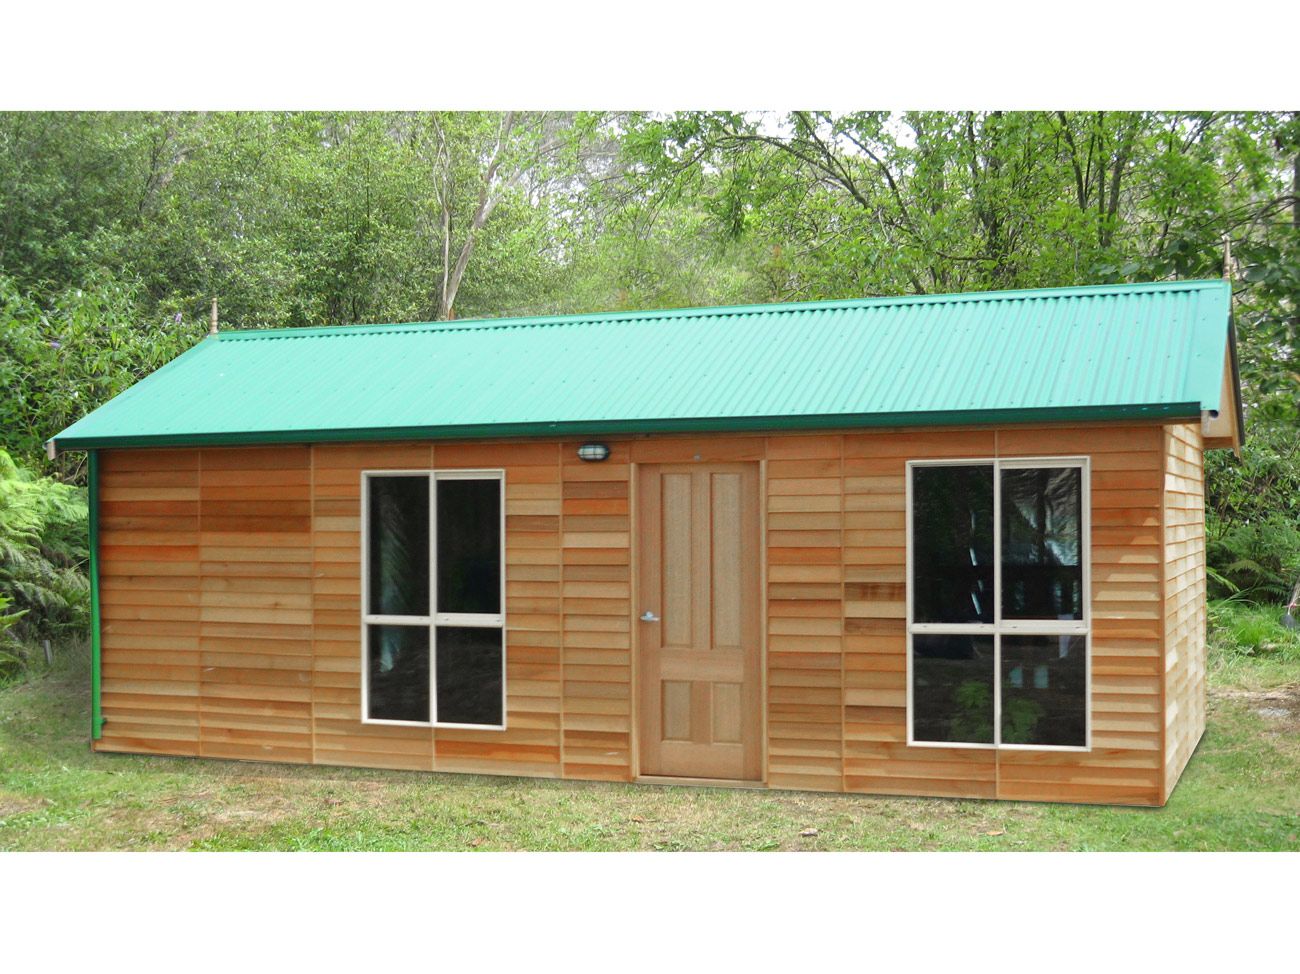 Snowy river cabin 7 2mx3 8m 11 landera for Backyard cabins granny flats